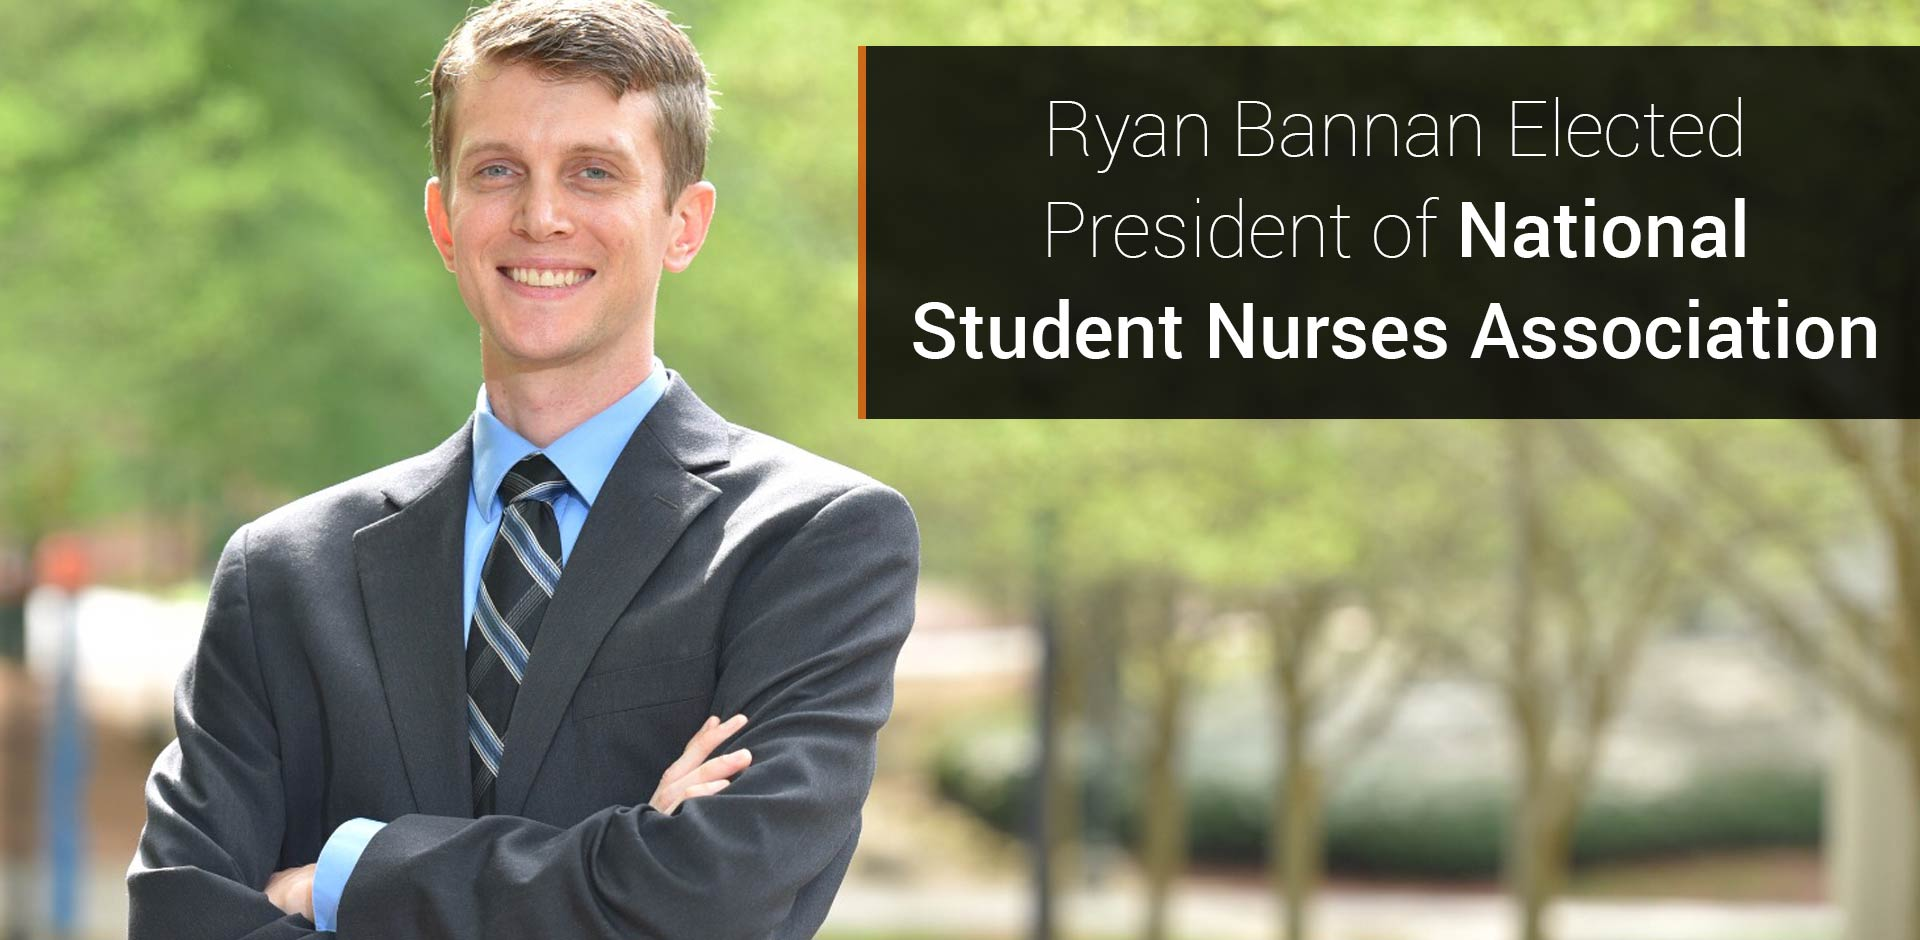 Georgia Baptist College of Nursing Student Elected President of National Student Nurses Association